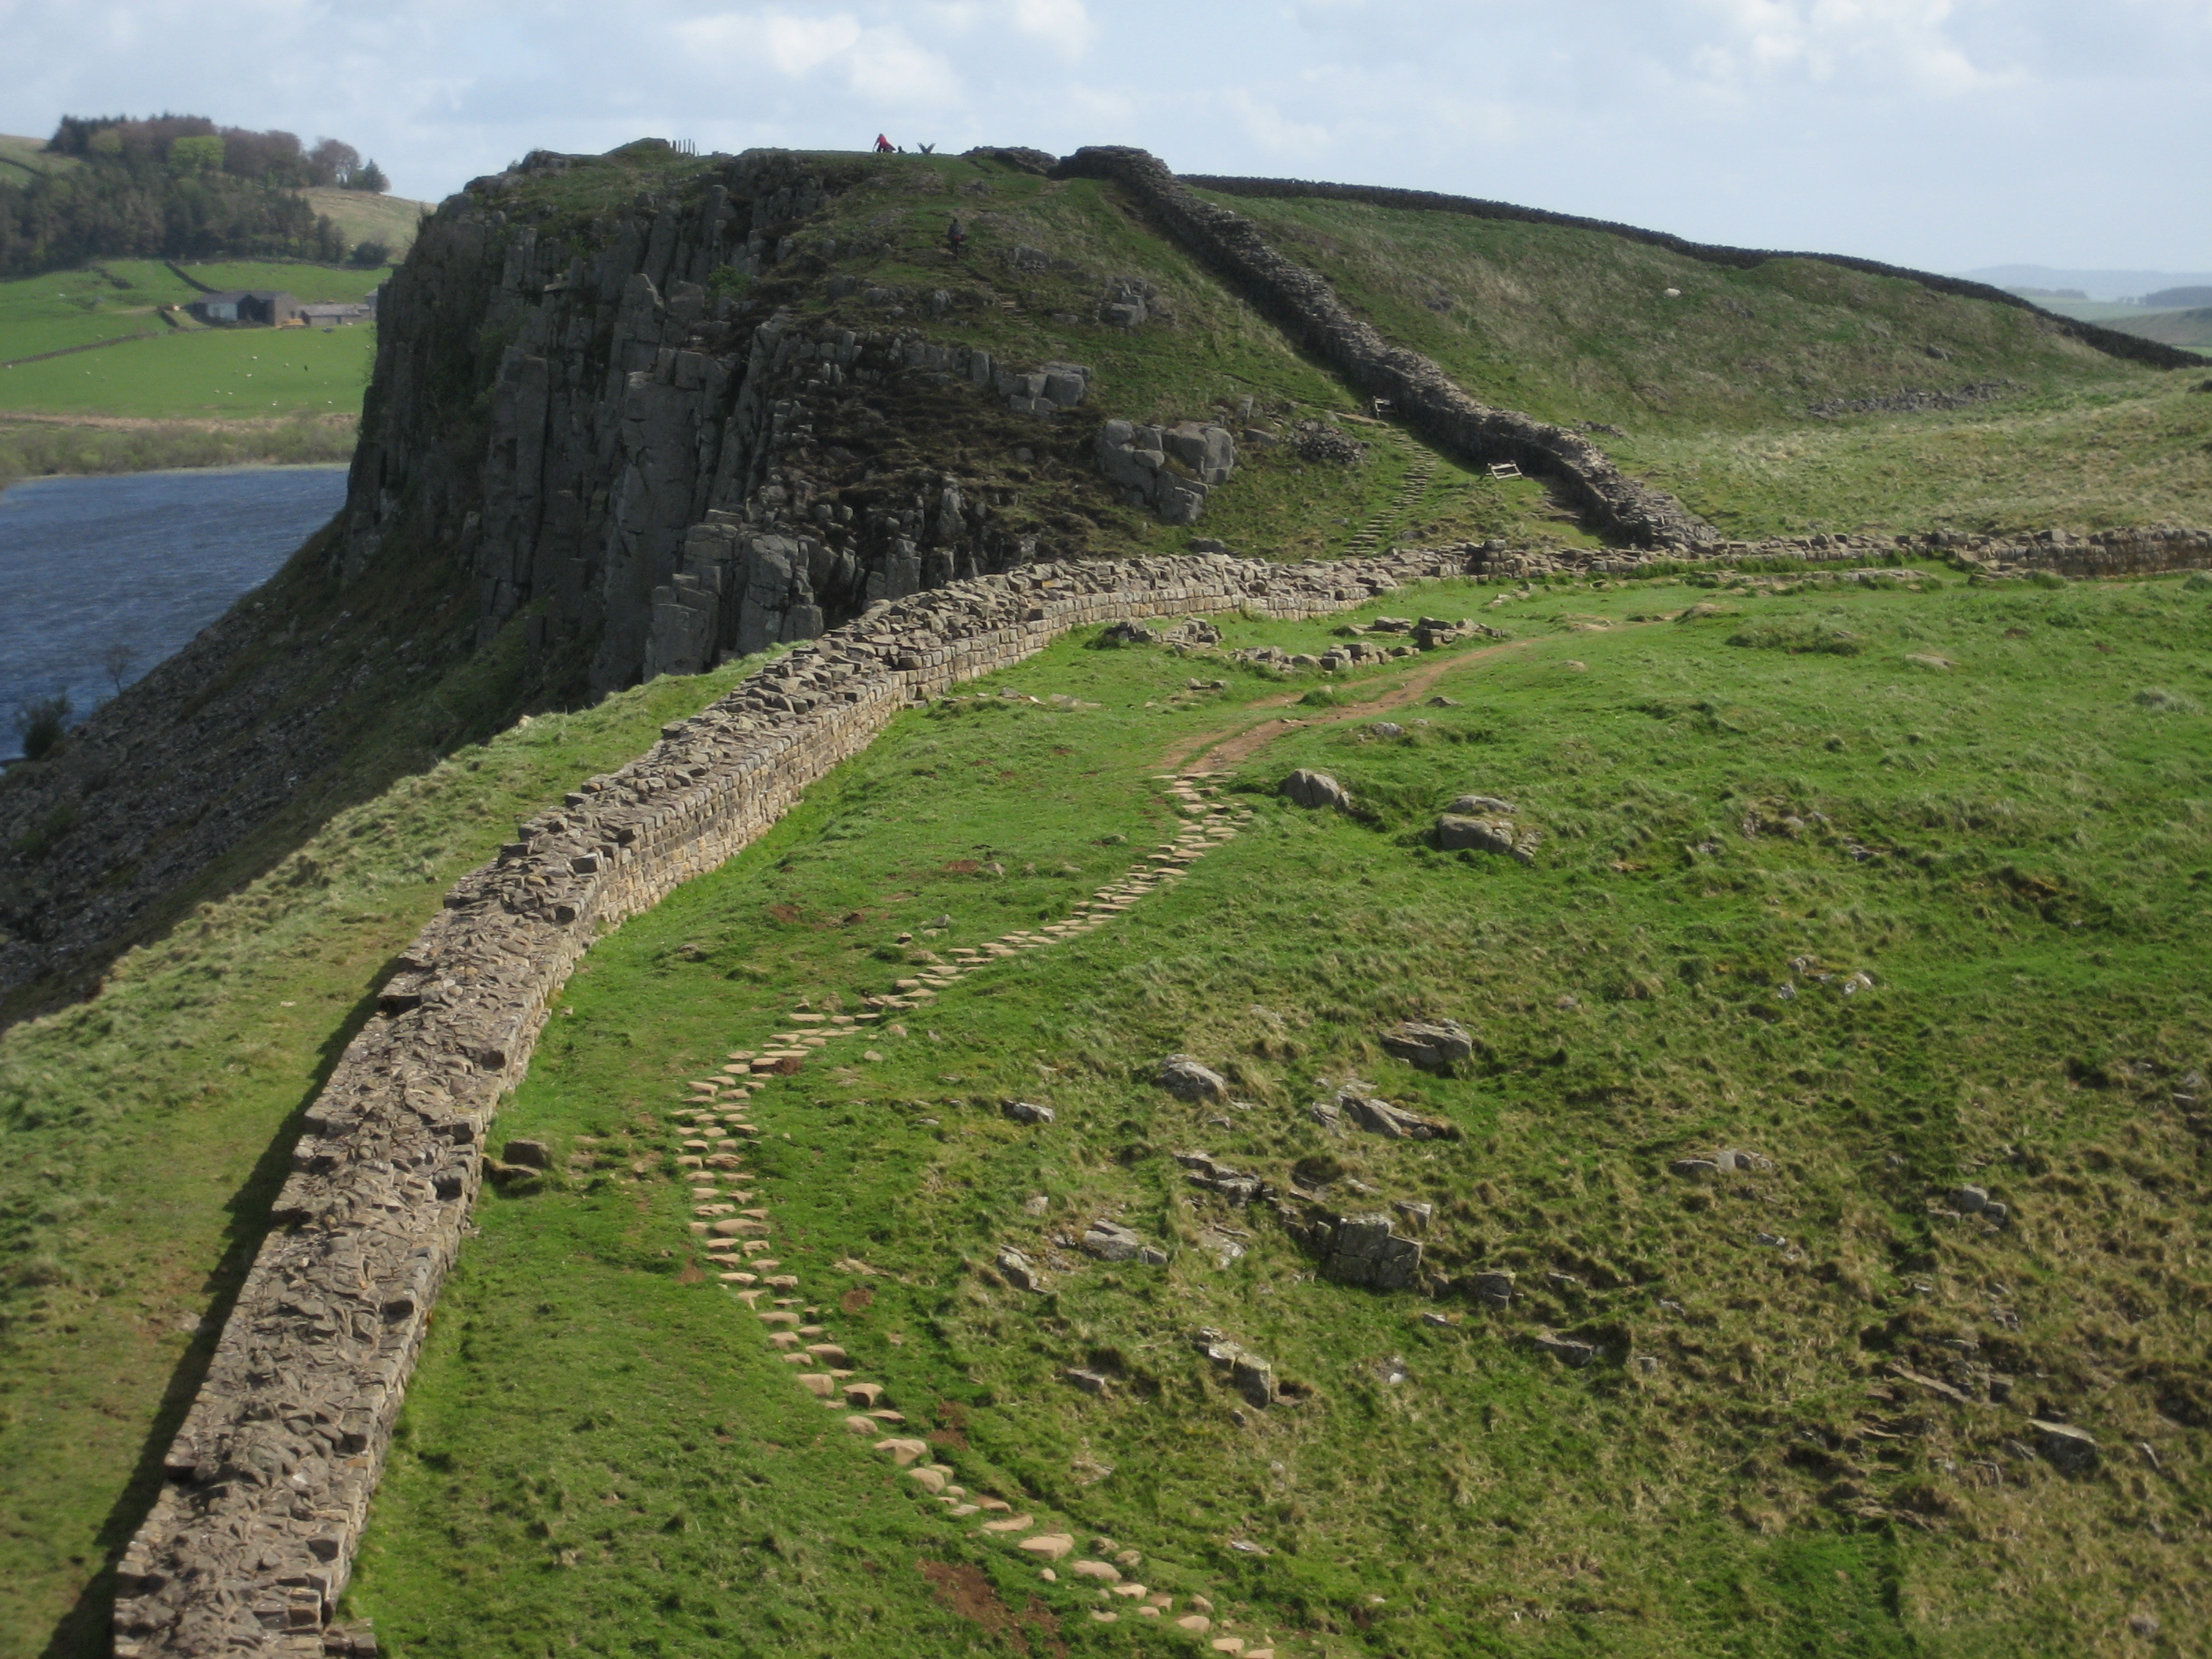 Hadrian's Wall and path, section near Crag Lough.